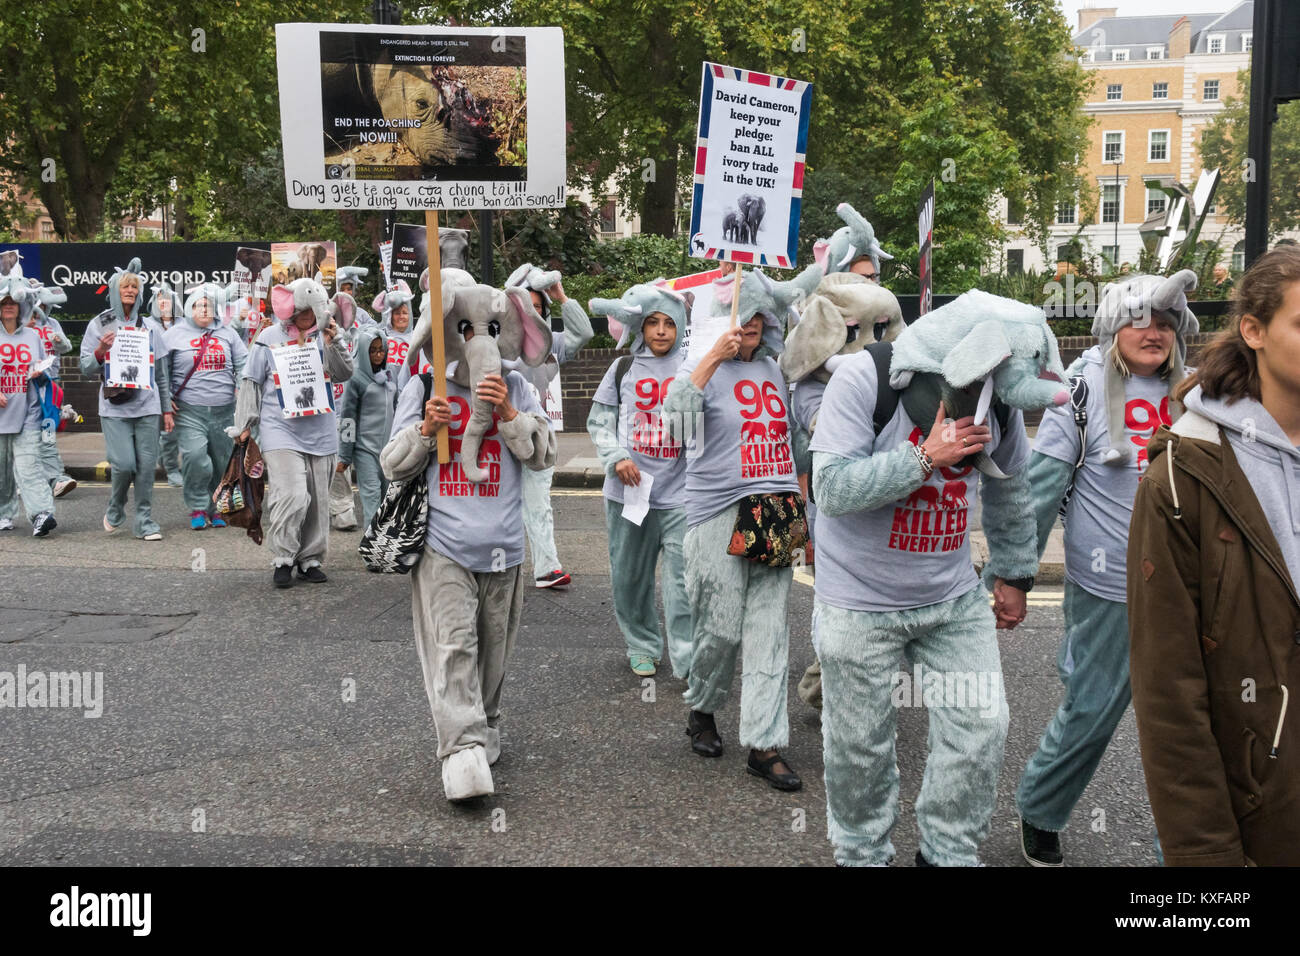 Some of the 96 marchers in elephant costumes at the front of the Global March for Elephants and Rhinos in London. - Stock Image